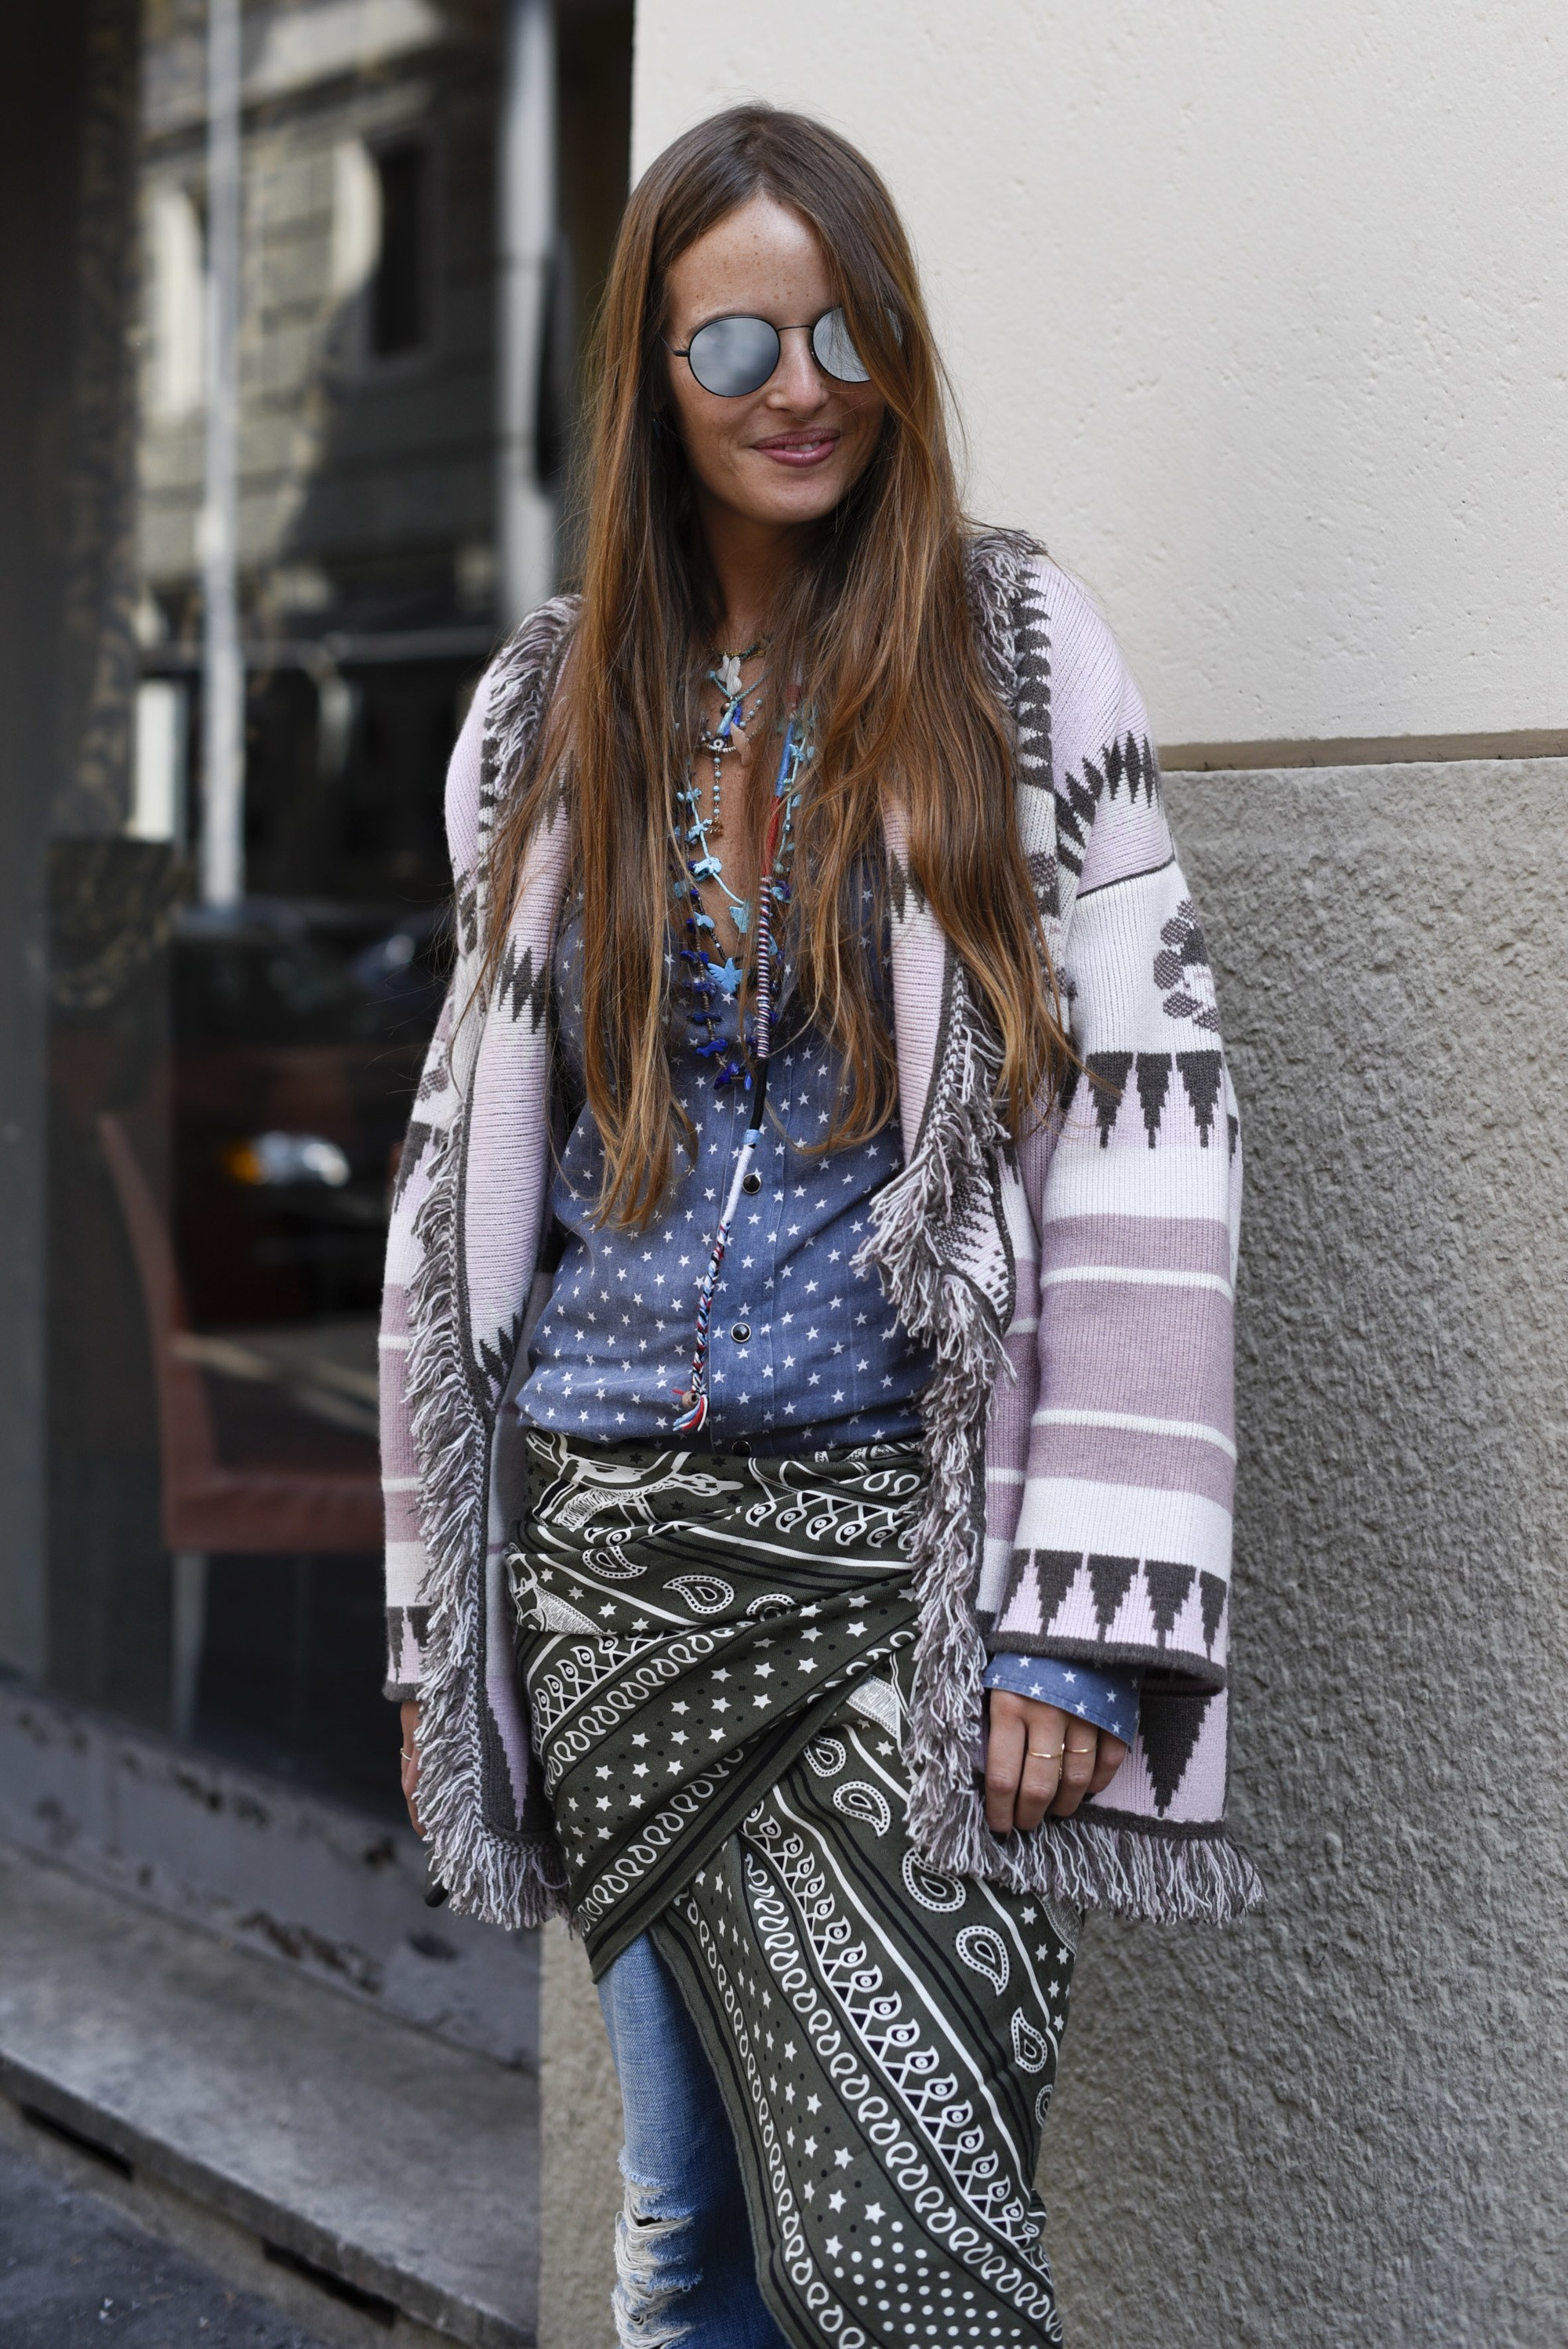 street style shot of a woman with long brunette hair wearing mirrored sunglasses and a bohemian outfit